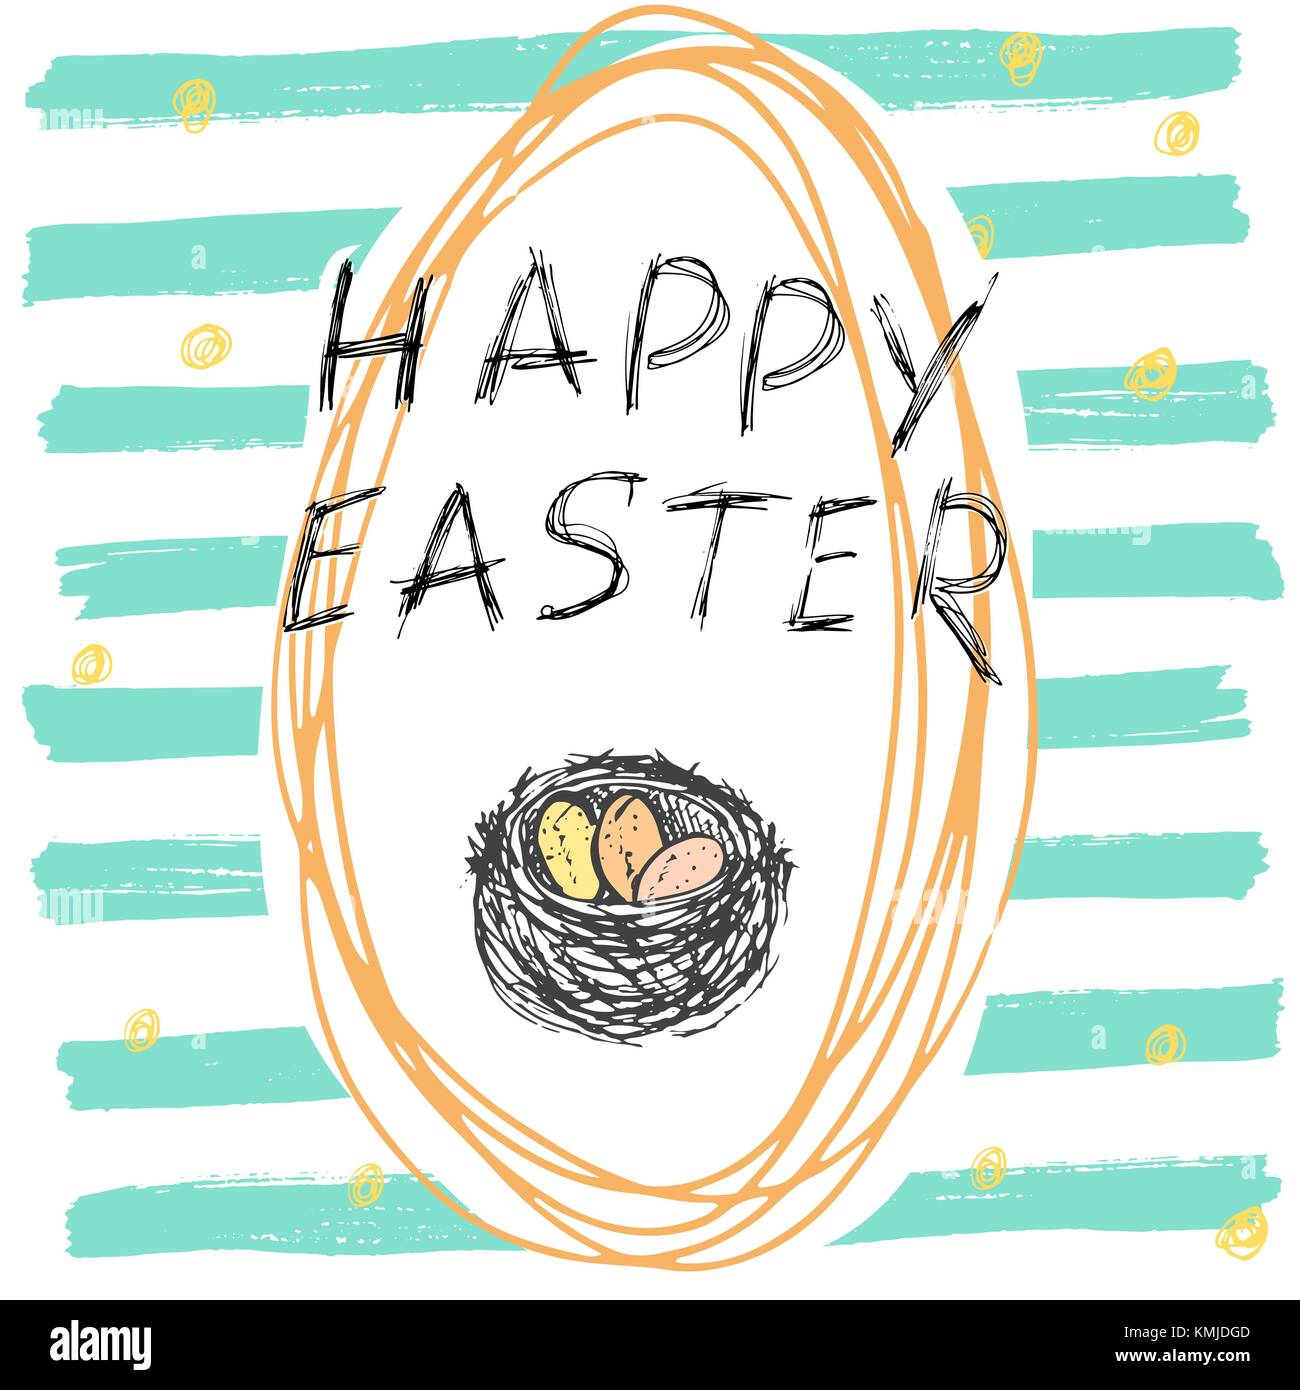 Happy easter hand drawn greeting card with lettering and sketched happy easter hand drawn greeting card with lettering and sketched doodle elements easter eggs on color background kristyandbryce Gallery